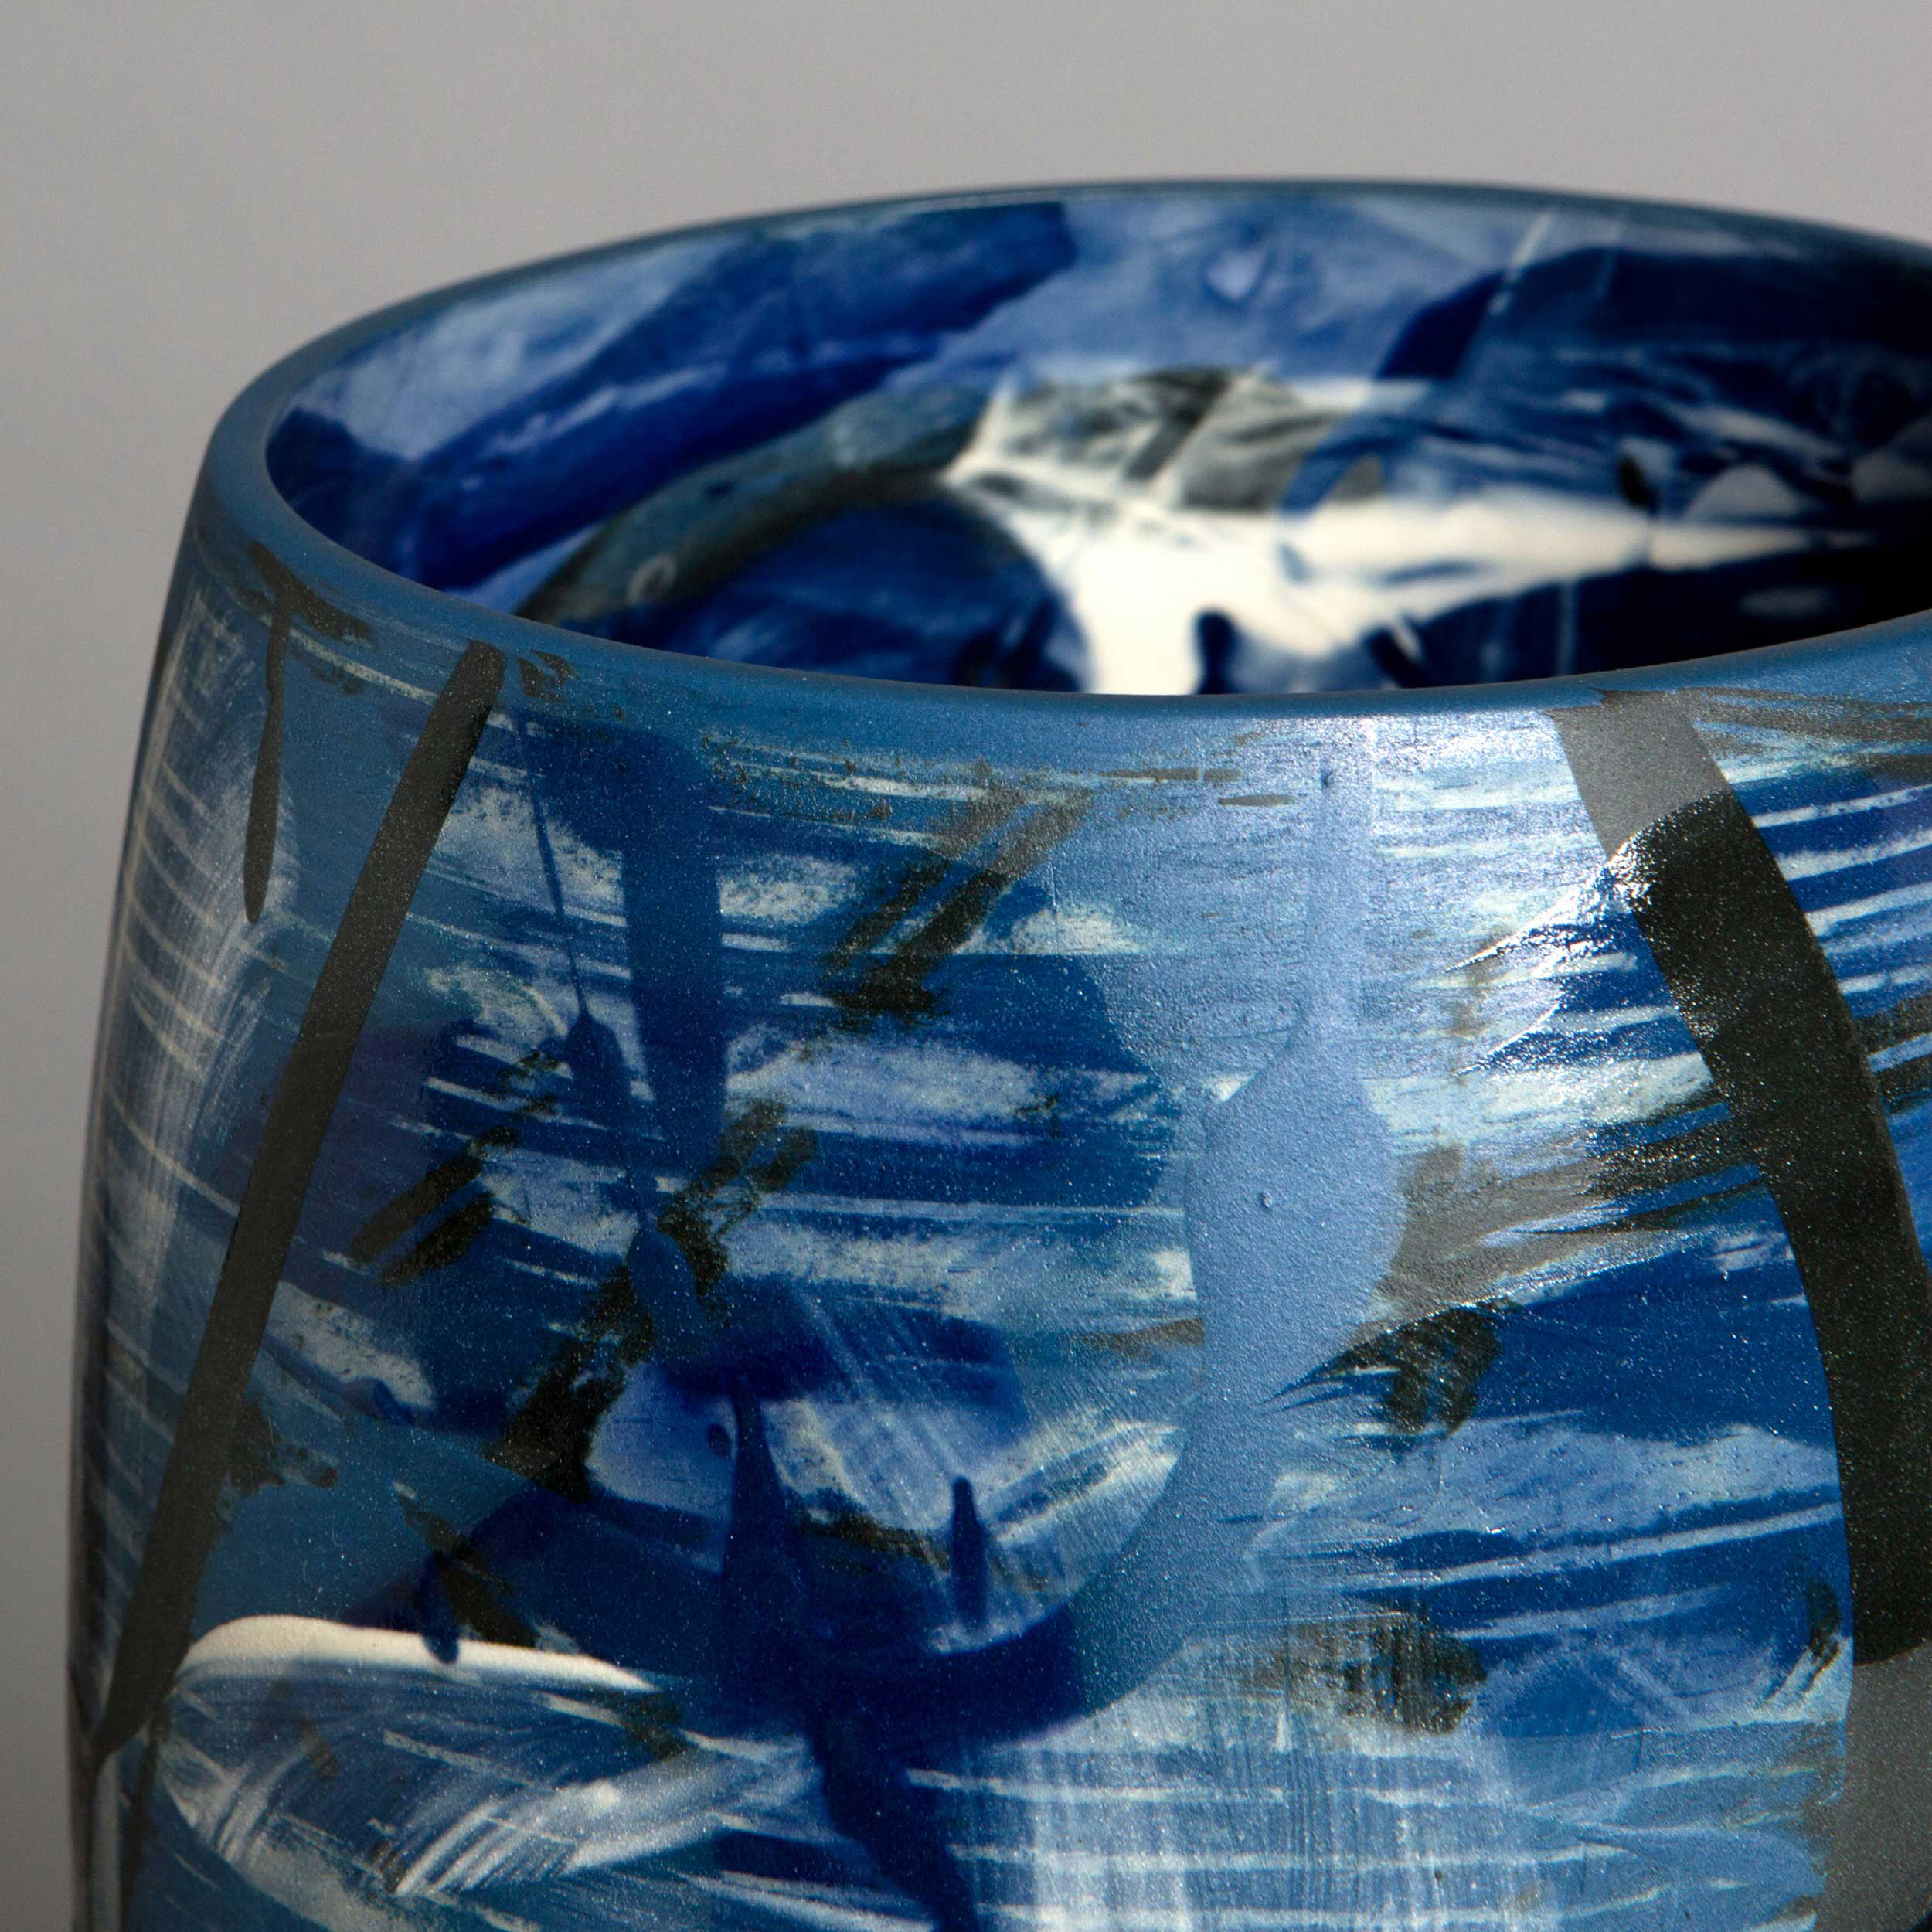 Under the Waves Ceramic Vase Detail by Rowena Gilbert